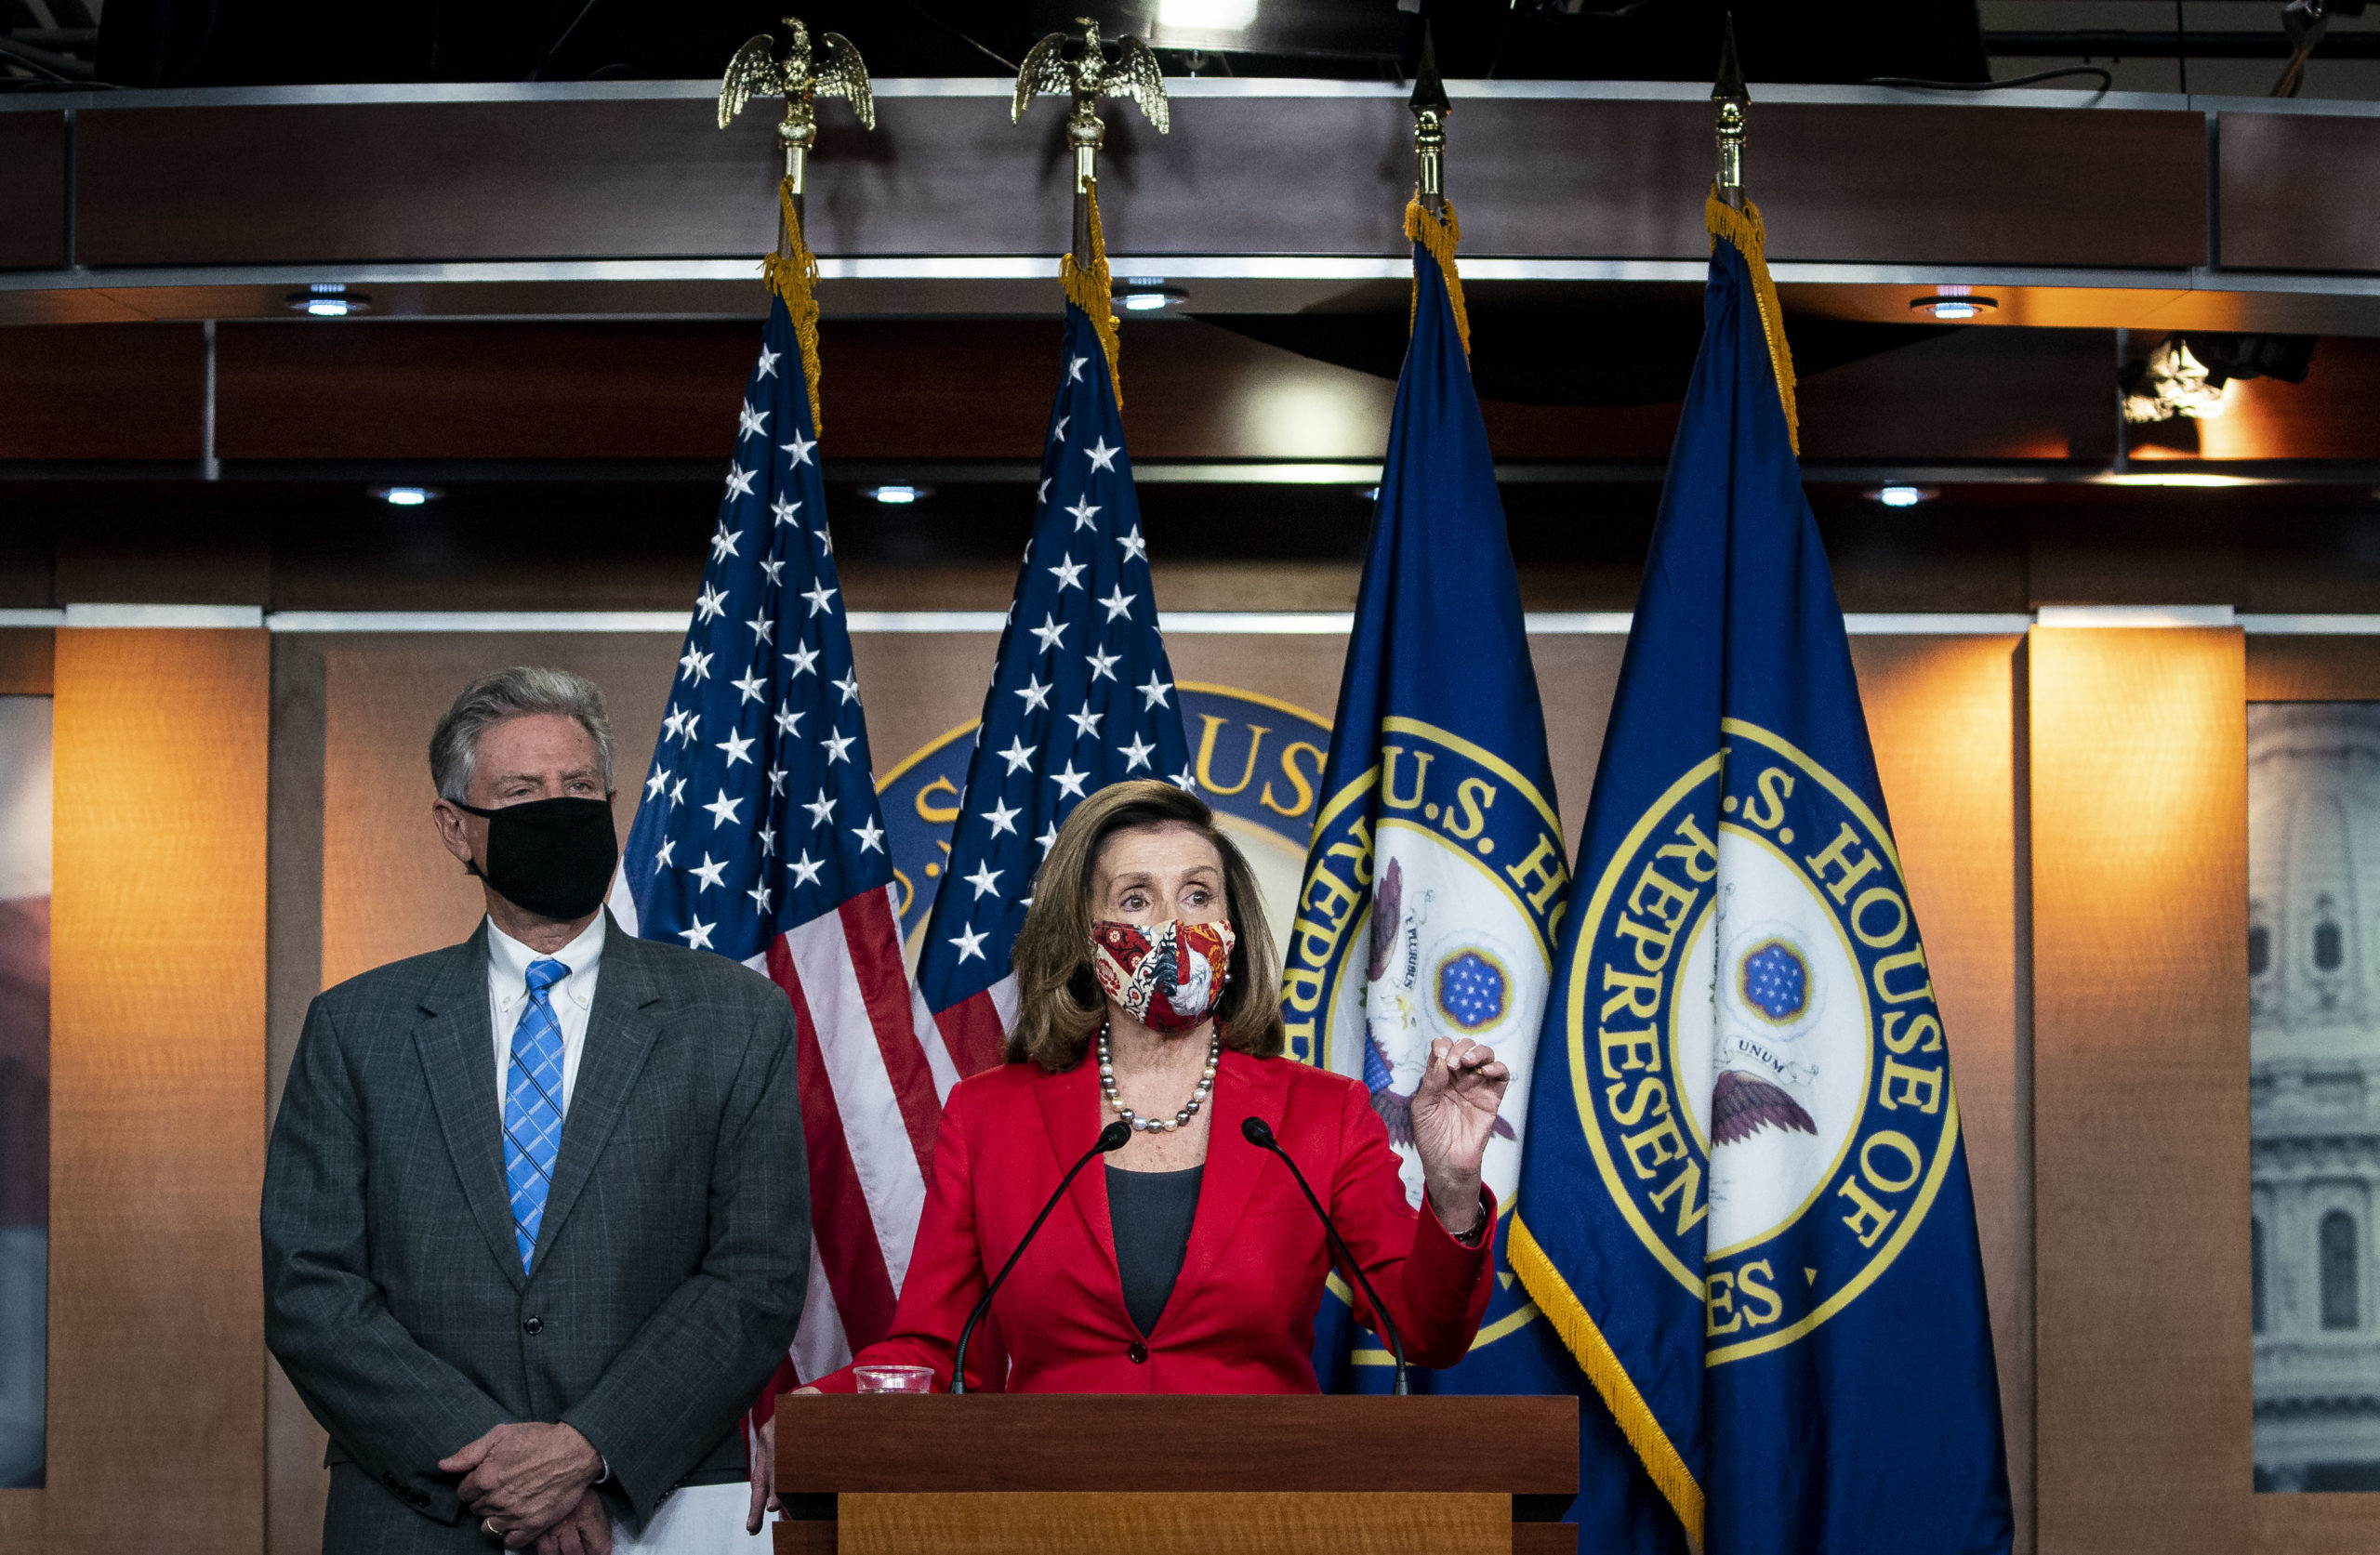 House Speaker Nancy Pelosi speaks alongside Energy and Commerce Committee Chairman Frank Pallone at the Capitol on Nov. 6, 2020. (Al Drago/Getty Images)